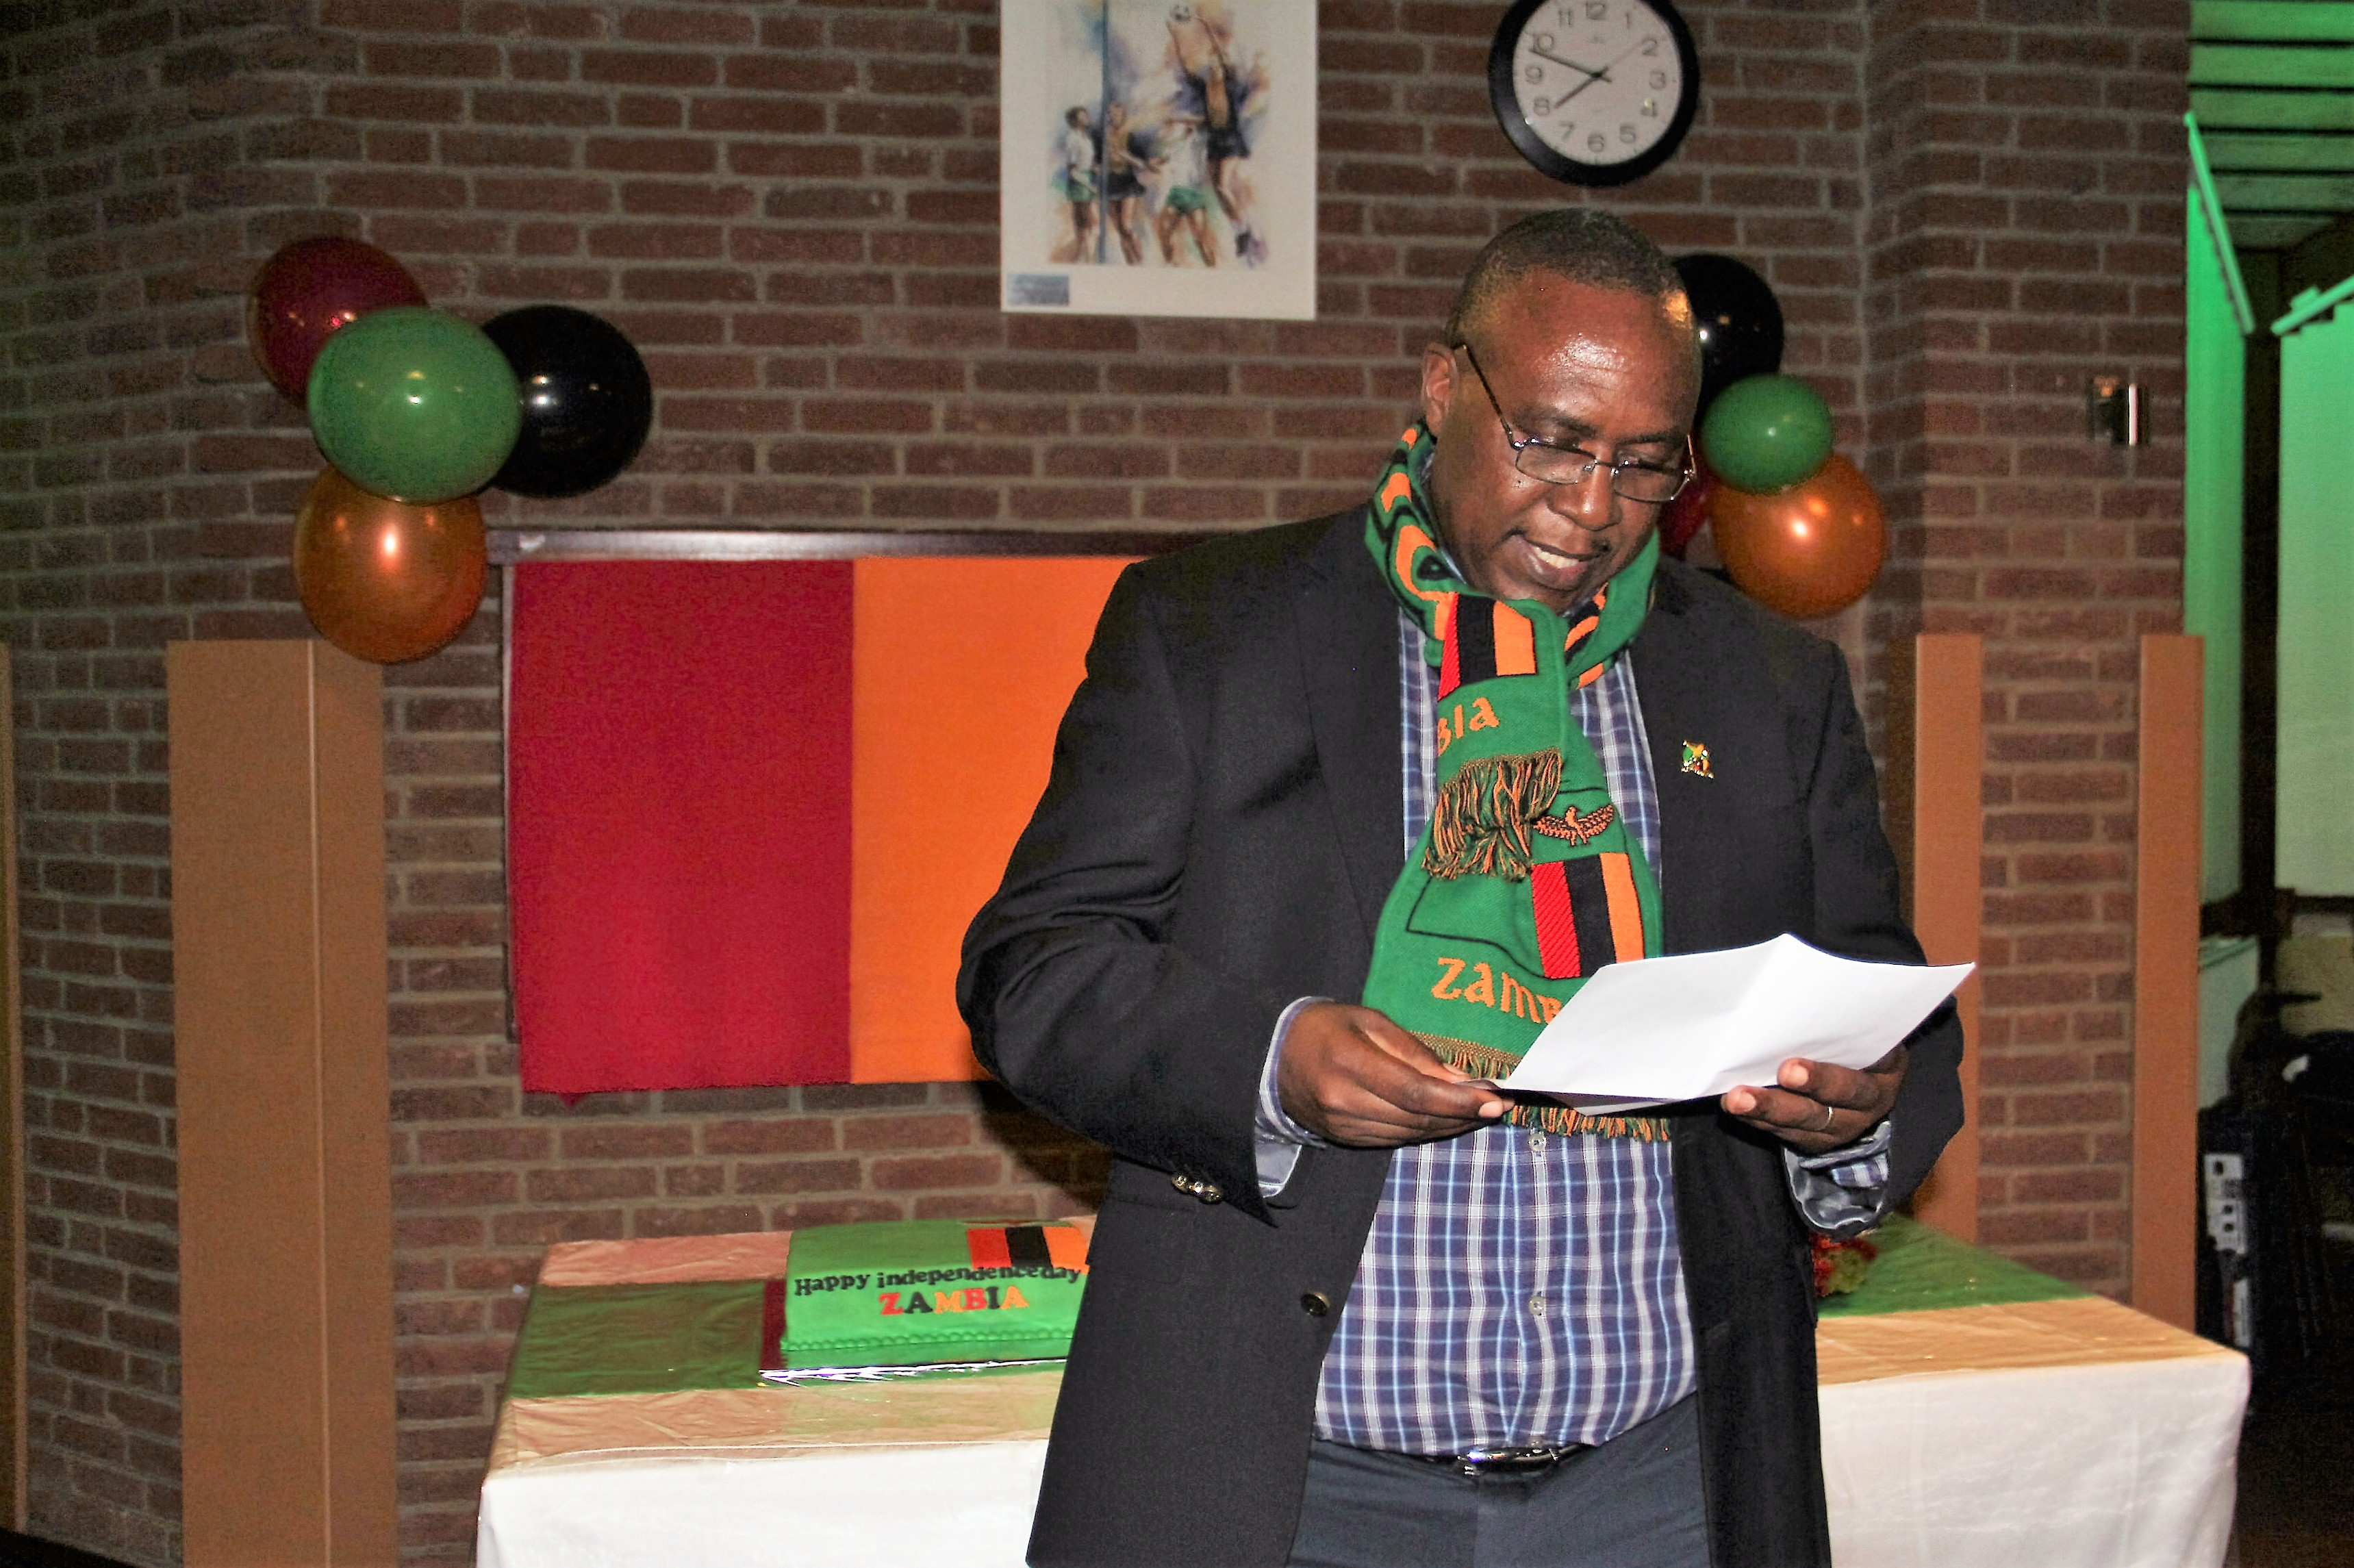 http://zebru.org/images/defense%20attache%20col.%20simwanda%20addressing%20zambian%20diasporas%20during%2052nd%20independence%20celebrarions%20in%20the%20netherlands.jpg